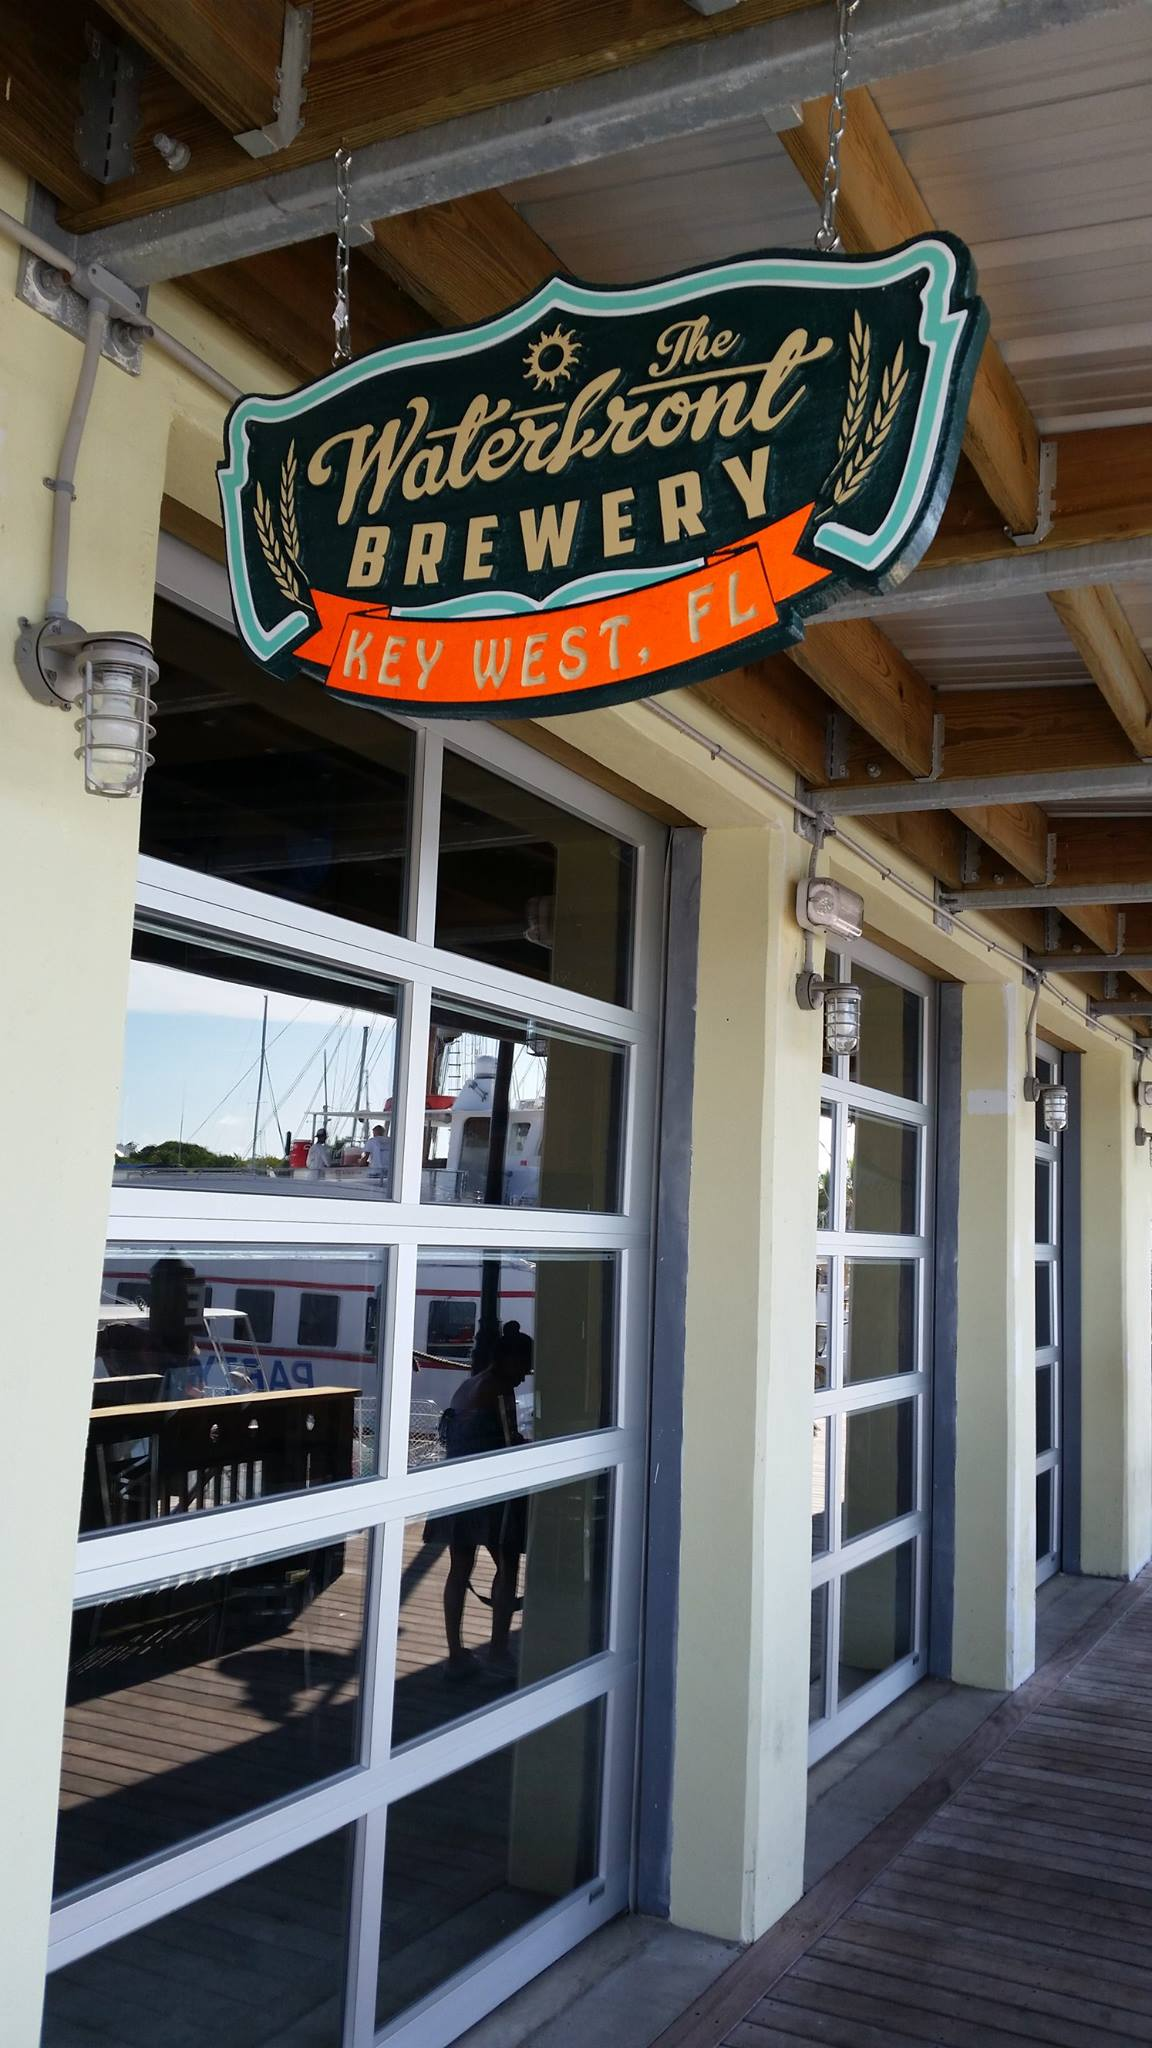 Ikea South Florida The Waterfront Brewery (key West) Opens To Serve Great